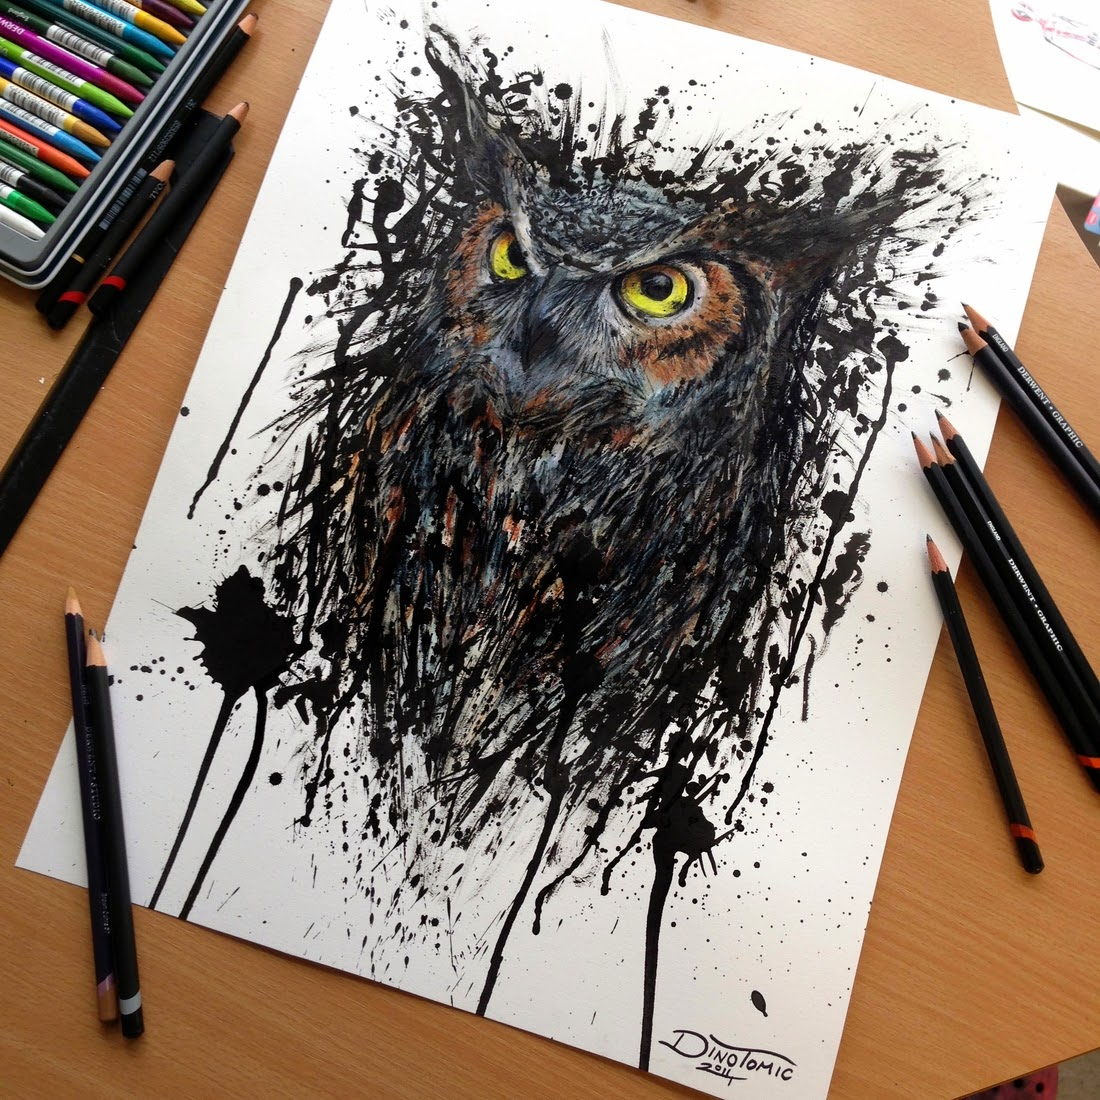 09-Owl-Splatter-Dino-Tomic-AtomiccircuS-Mastering-Art-in-Eclectic-Drawings-www-designstack-co